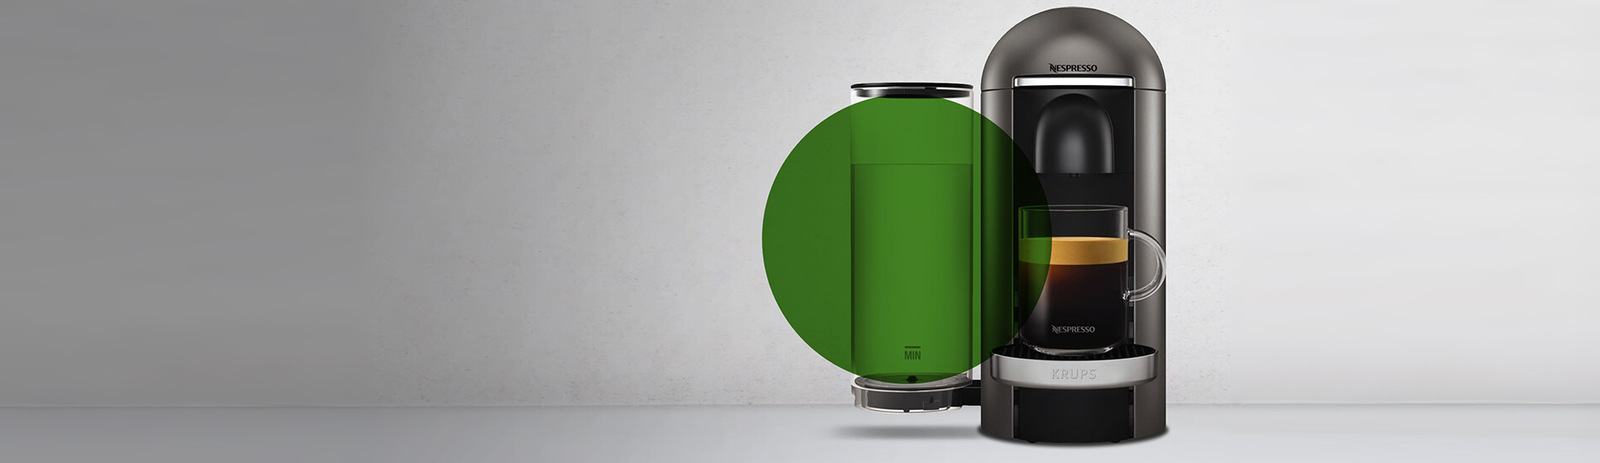 INFOGRAPHIC: What to look for in a pod coffee machine